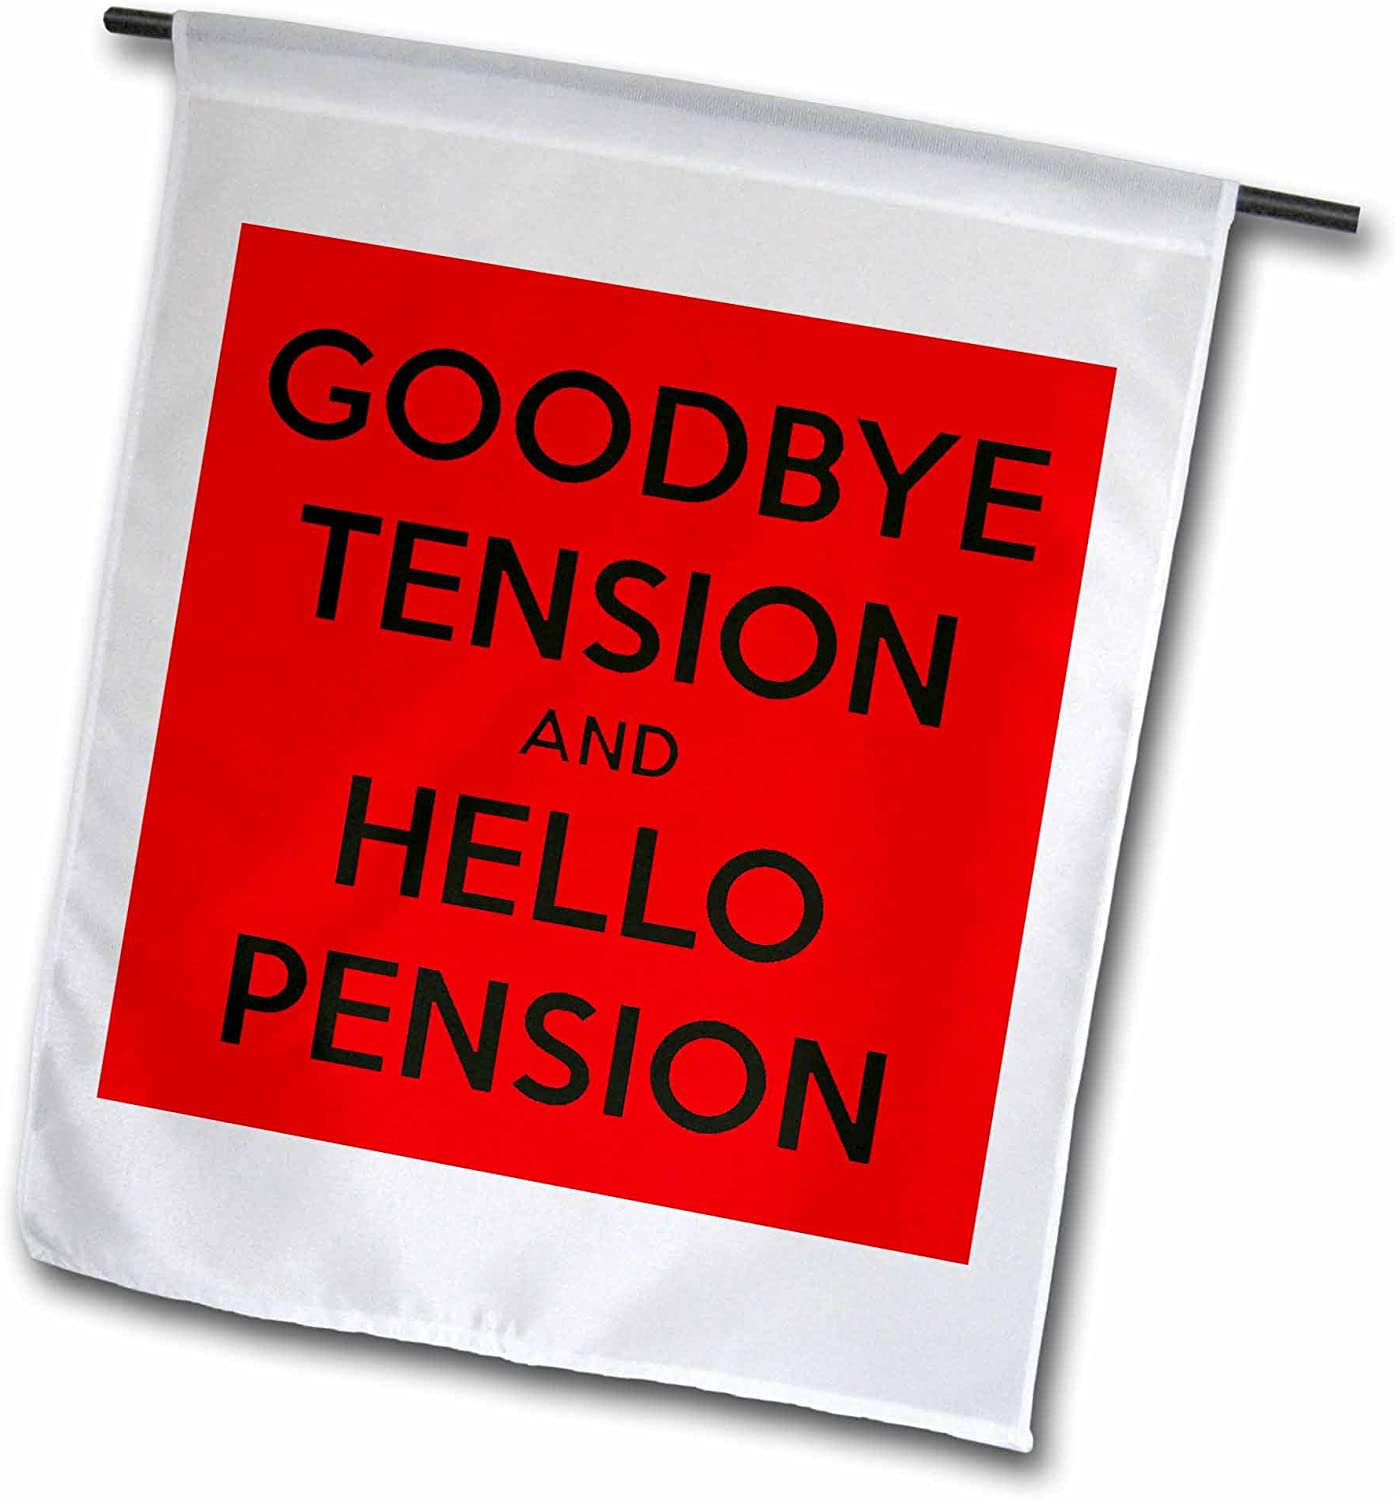 3dRose fl_193432_1 Goodbye Tension and Hello Pension. Red and Black Garden Flag, 12 by 18-Inch